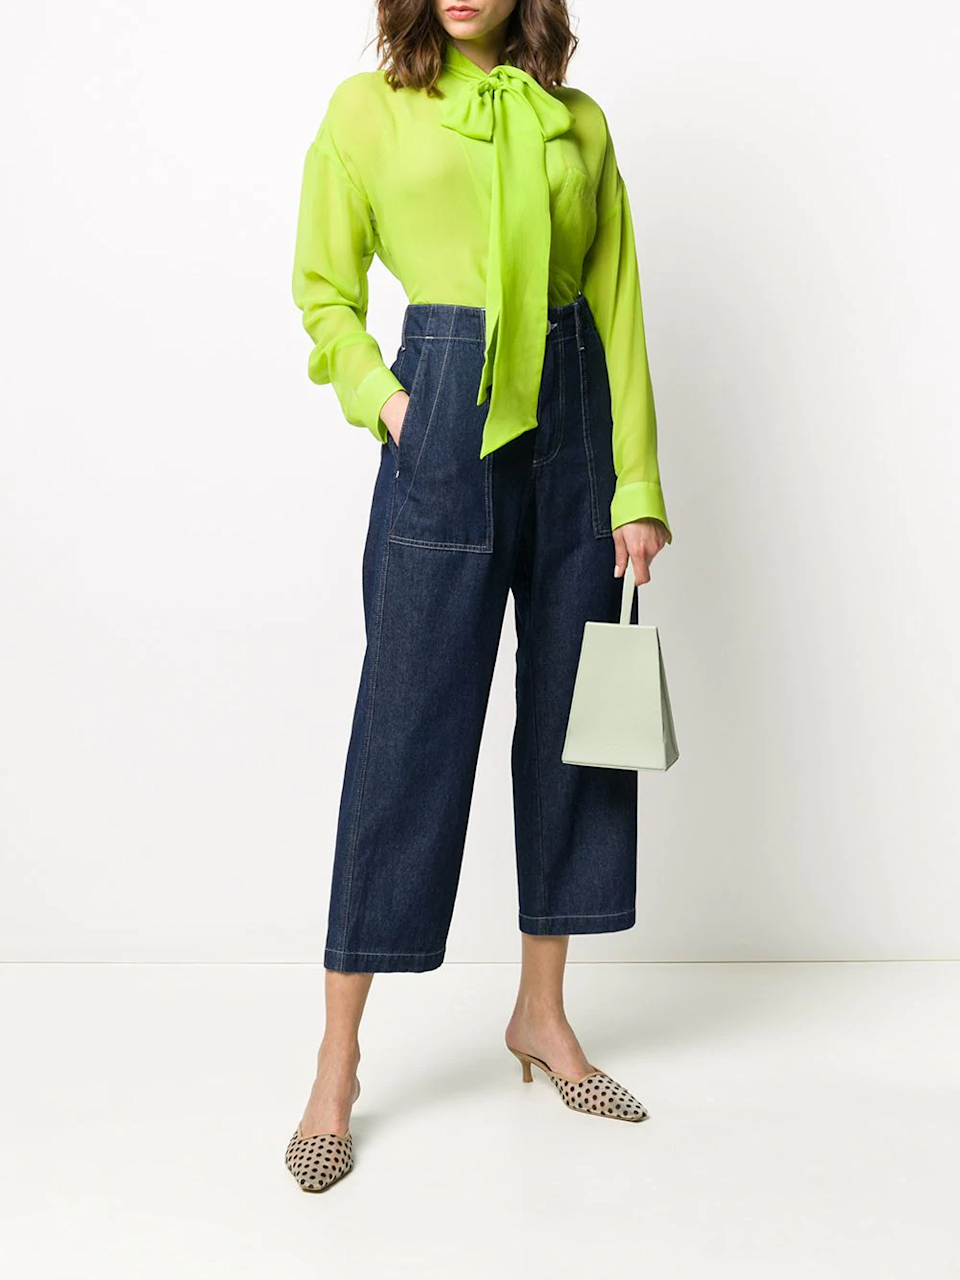 """<h2>Clean Denim</h2><br>""""In complicated times, it's nice when some things are simple. This year, the best denim comes in clean, fuss-free finishes — dark washes have an effortless polished feel that renders them a flexible staple.""""<br><br>-Celenie Seidel, Senior Womenswear Editor at FARFETCH<br><br><strong>Jejia</strong> Stiching-Detail Cropped Jeans, $, available at <a href=""""https://go.skimresources.com/?id=30283X879131&url=https%3A%2F%2Fwww.farfetch.com%2Fshopping%2Fwomen%2Fjejia-stiching-detail-cropped-jeans-item-15303089.aspx"""" rel=""""nofollow noopener"""" target=""""_blank"""" data-ylk=""""slk:Farfetch"""" class=""""link rapid-noclick-resp"""">Farfetch</a>"""